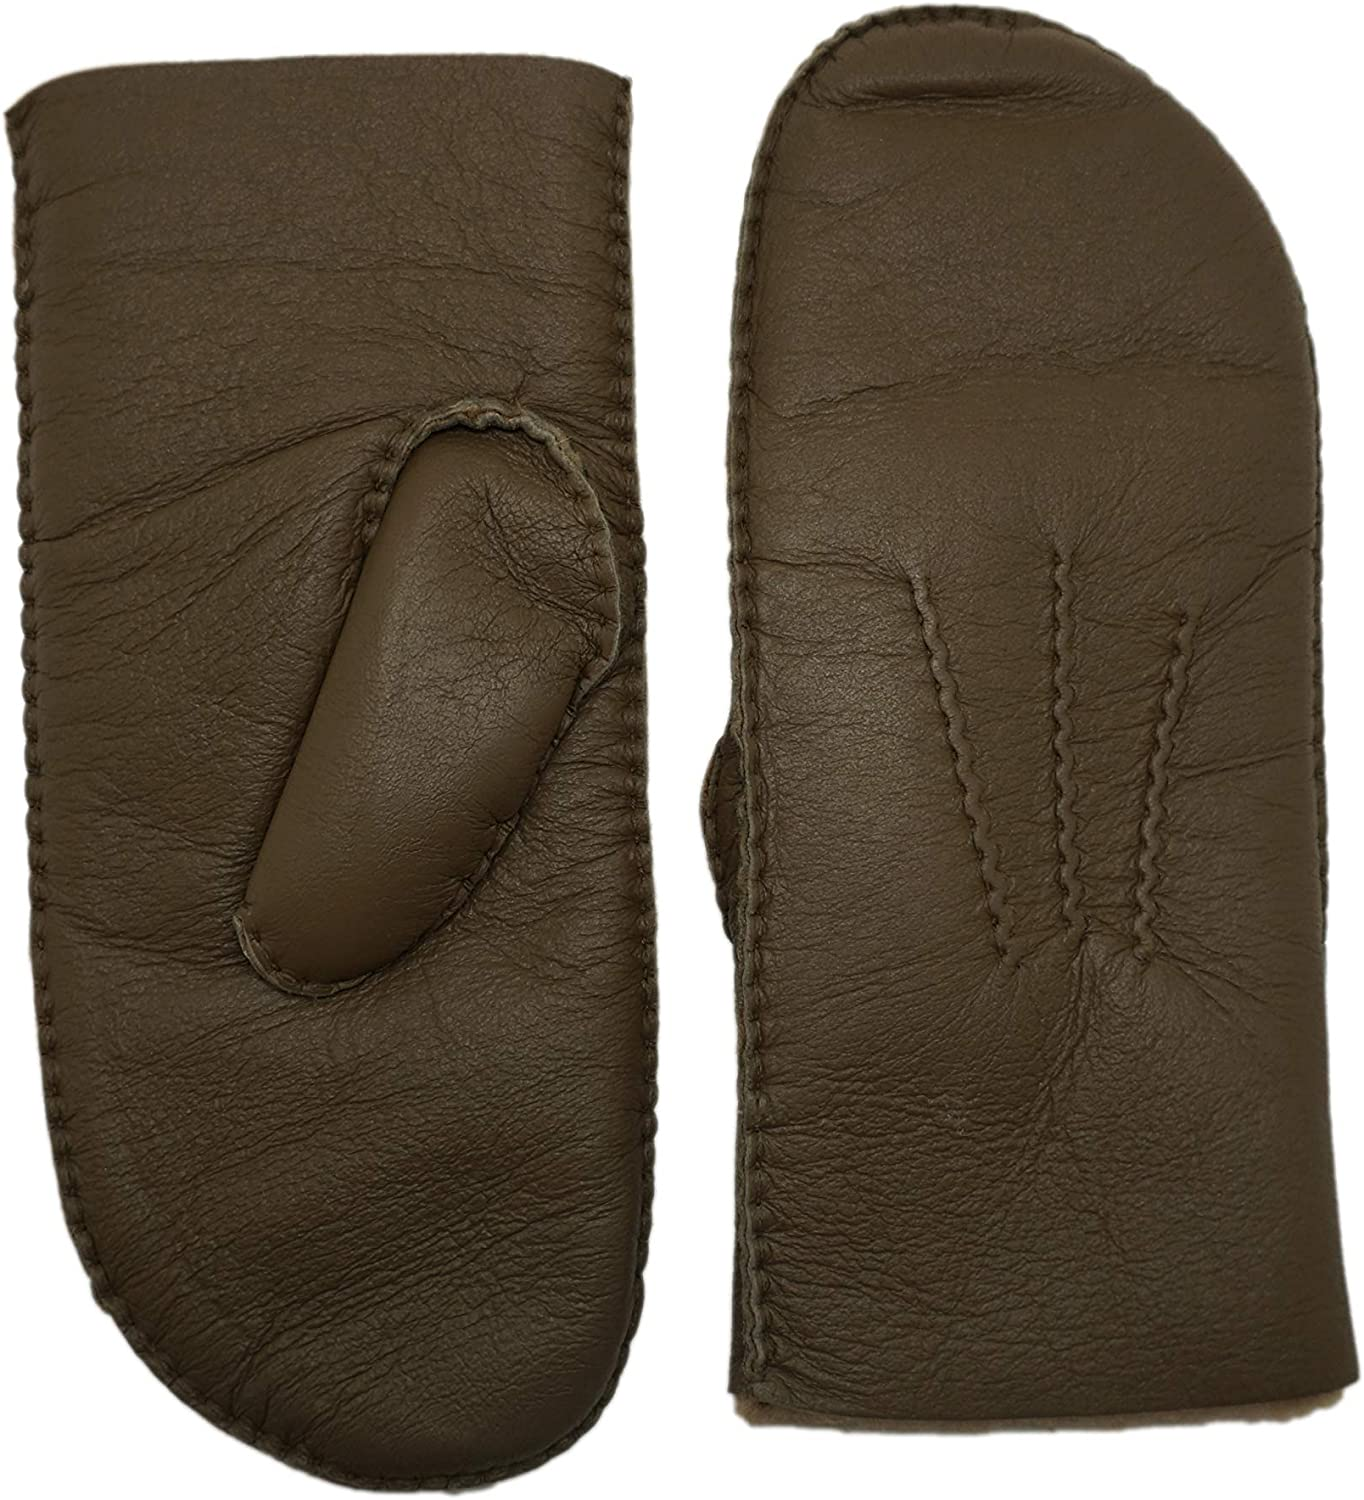 YISEVEN Women's Shearling Leather Gloves